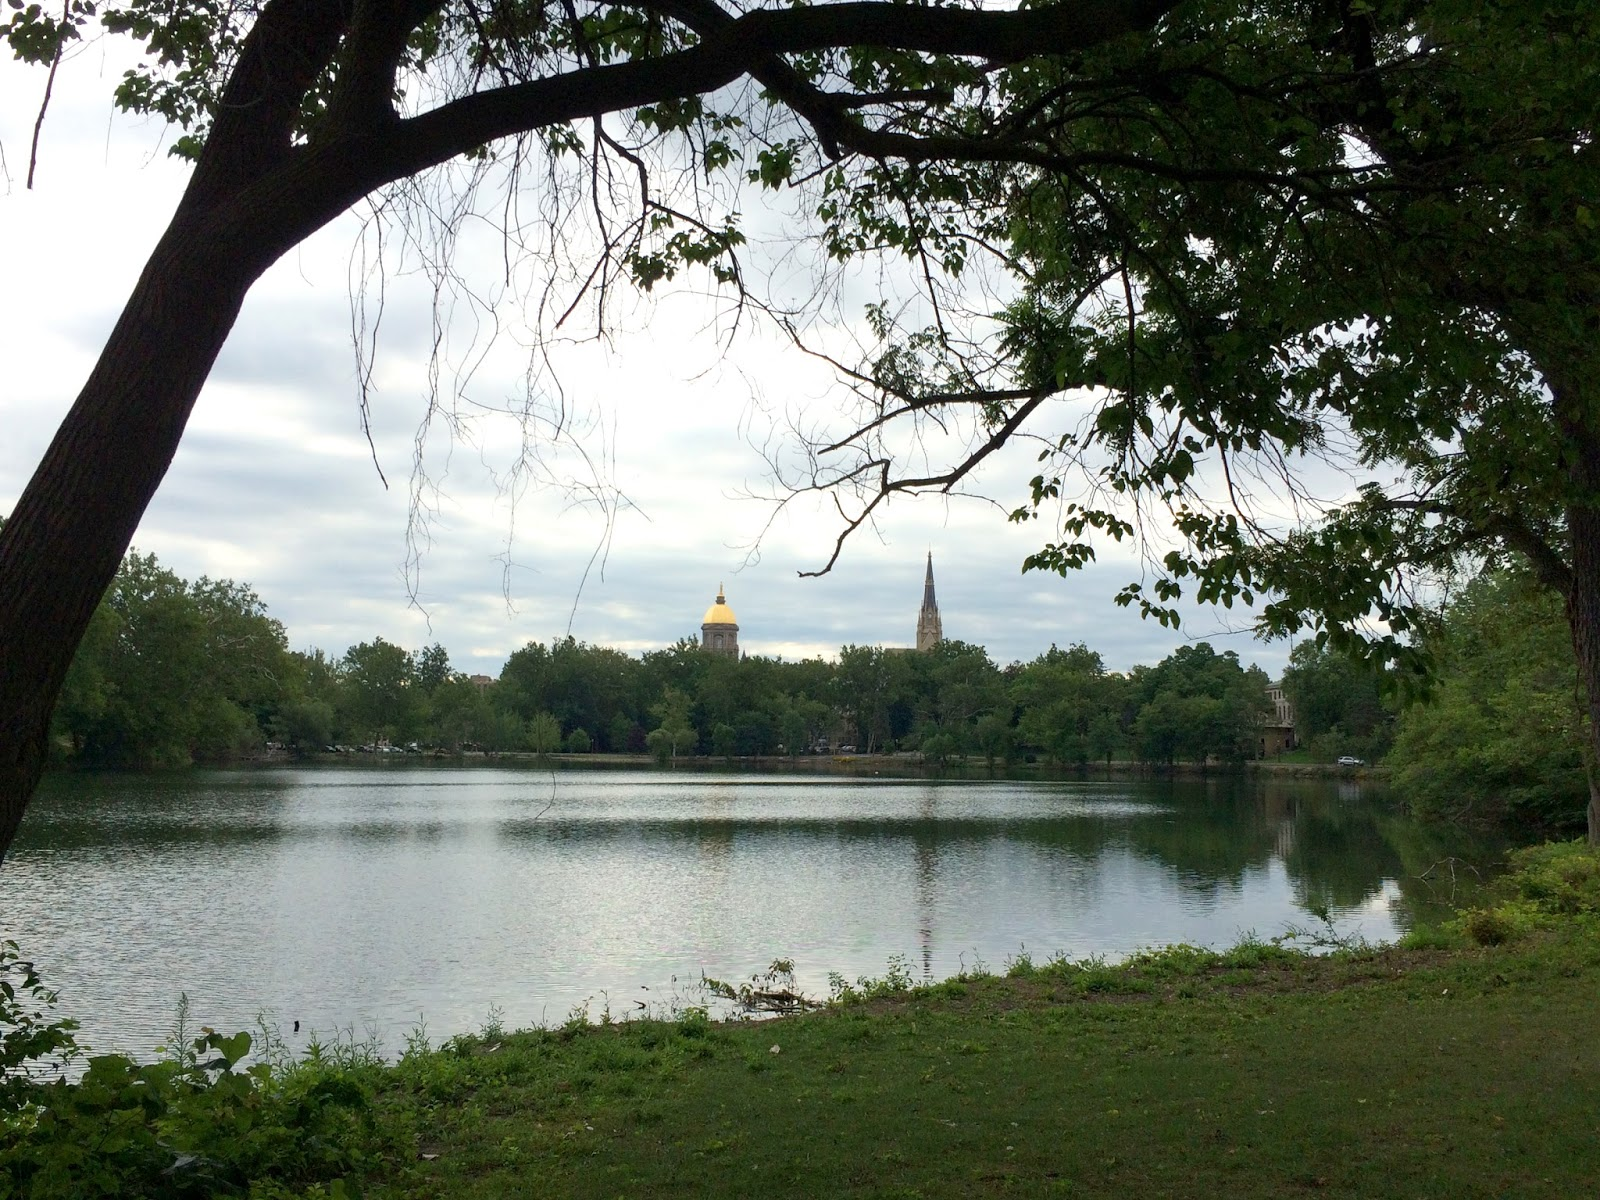 cozy birdhouse | view of the university of notre dame from across the lake